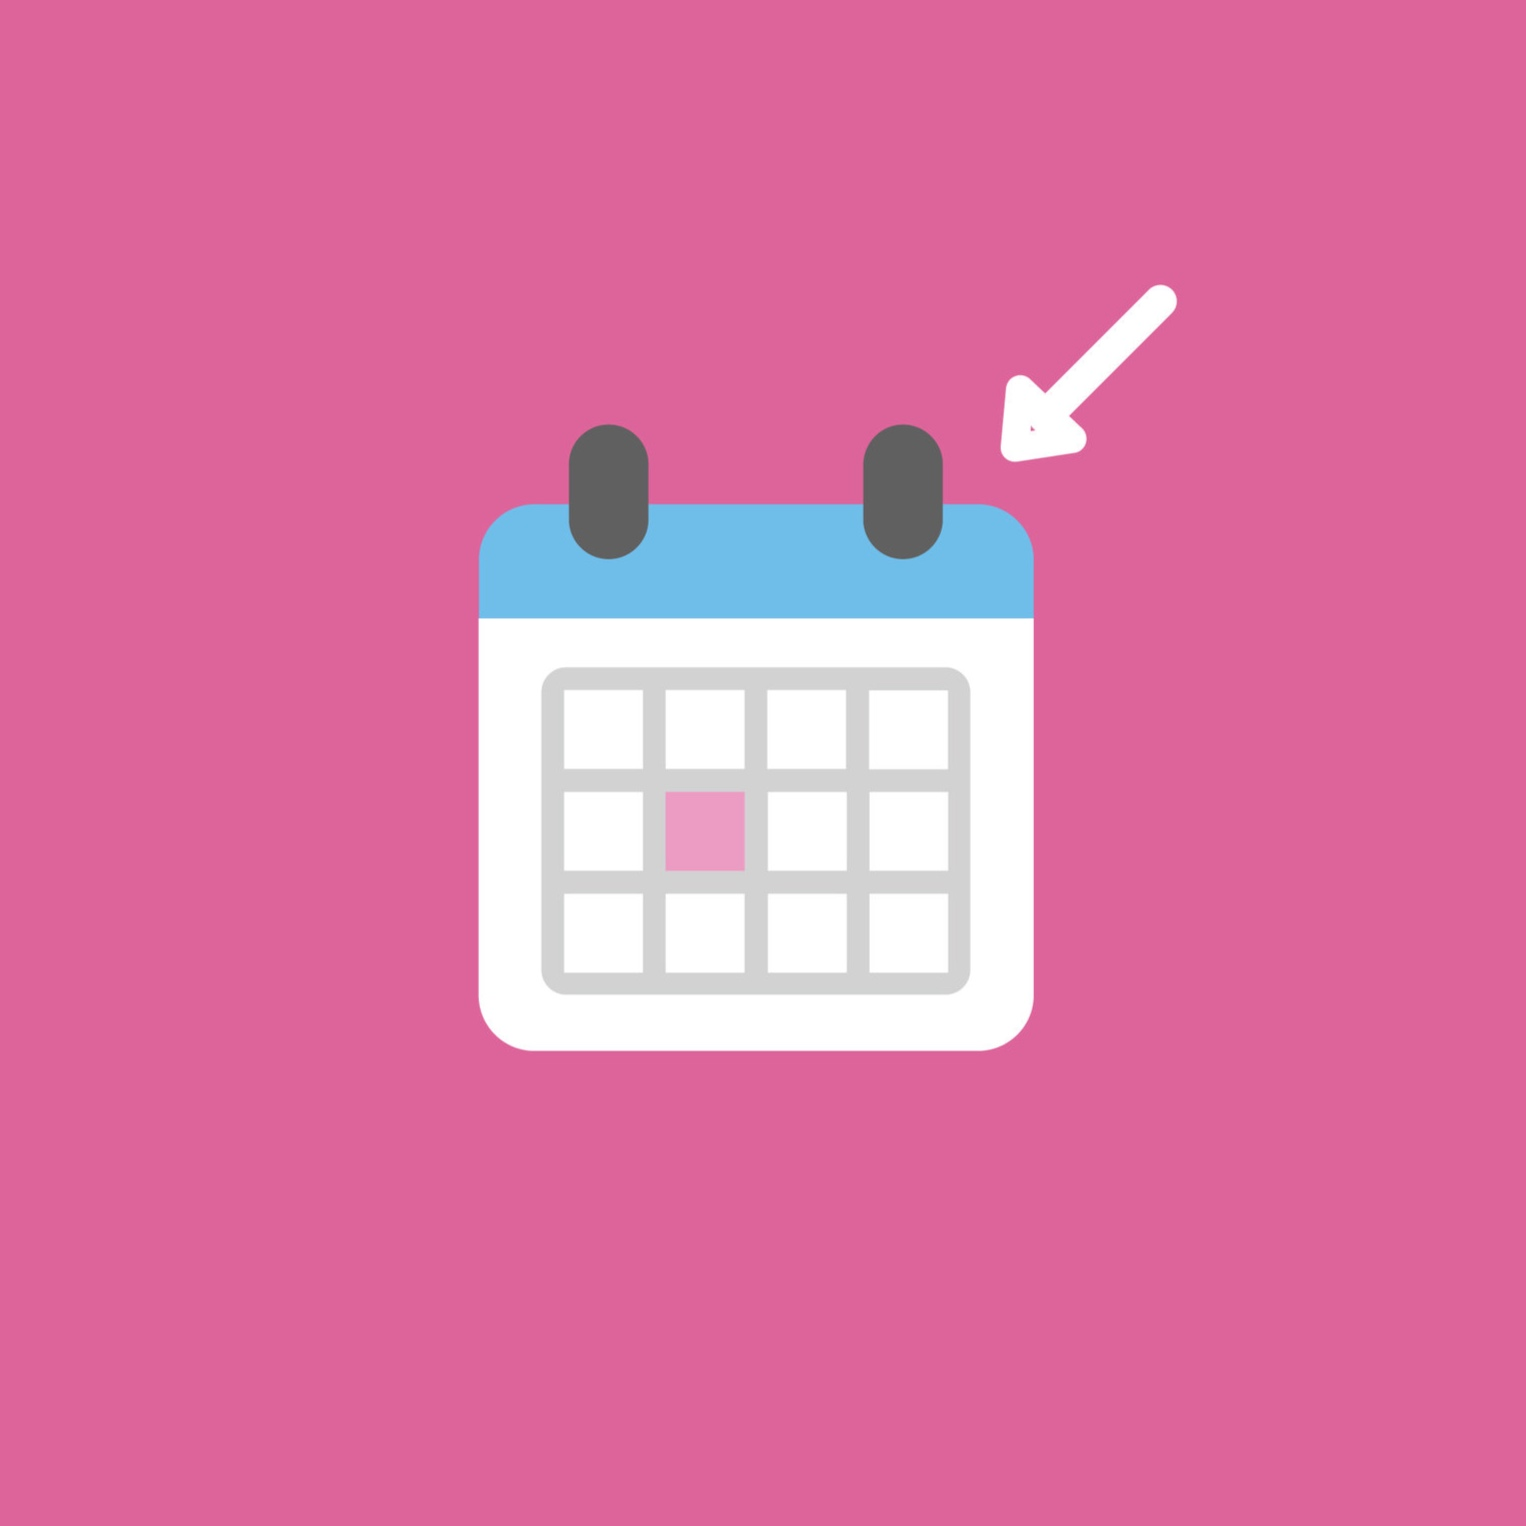 Import Events - Import your calendar to manage your personal events and Tempi events.